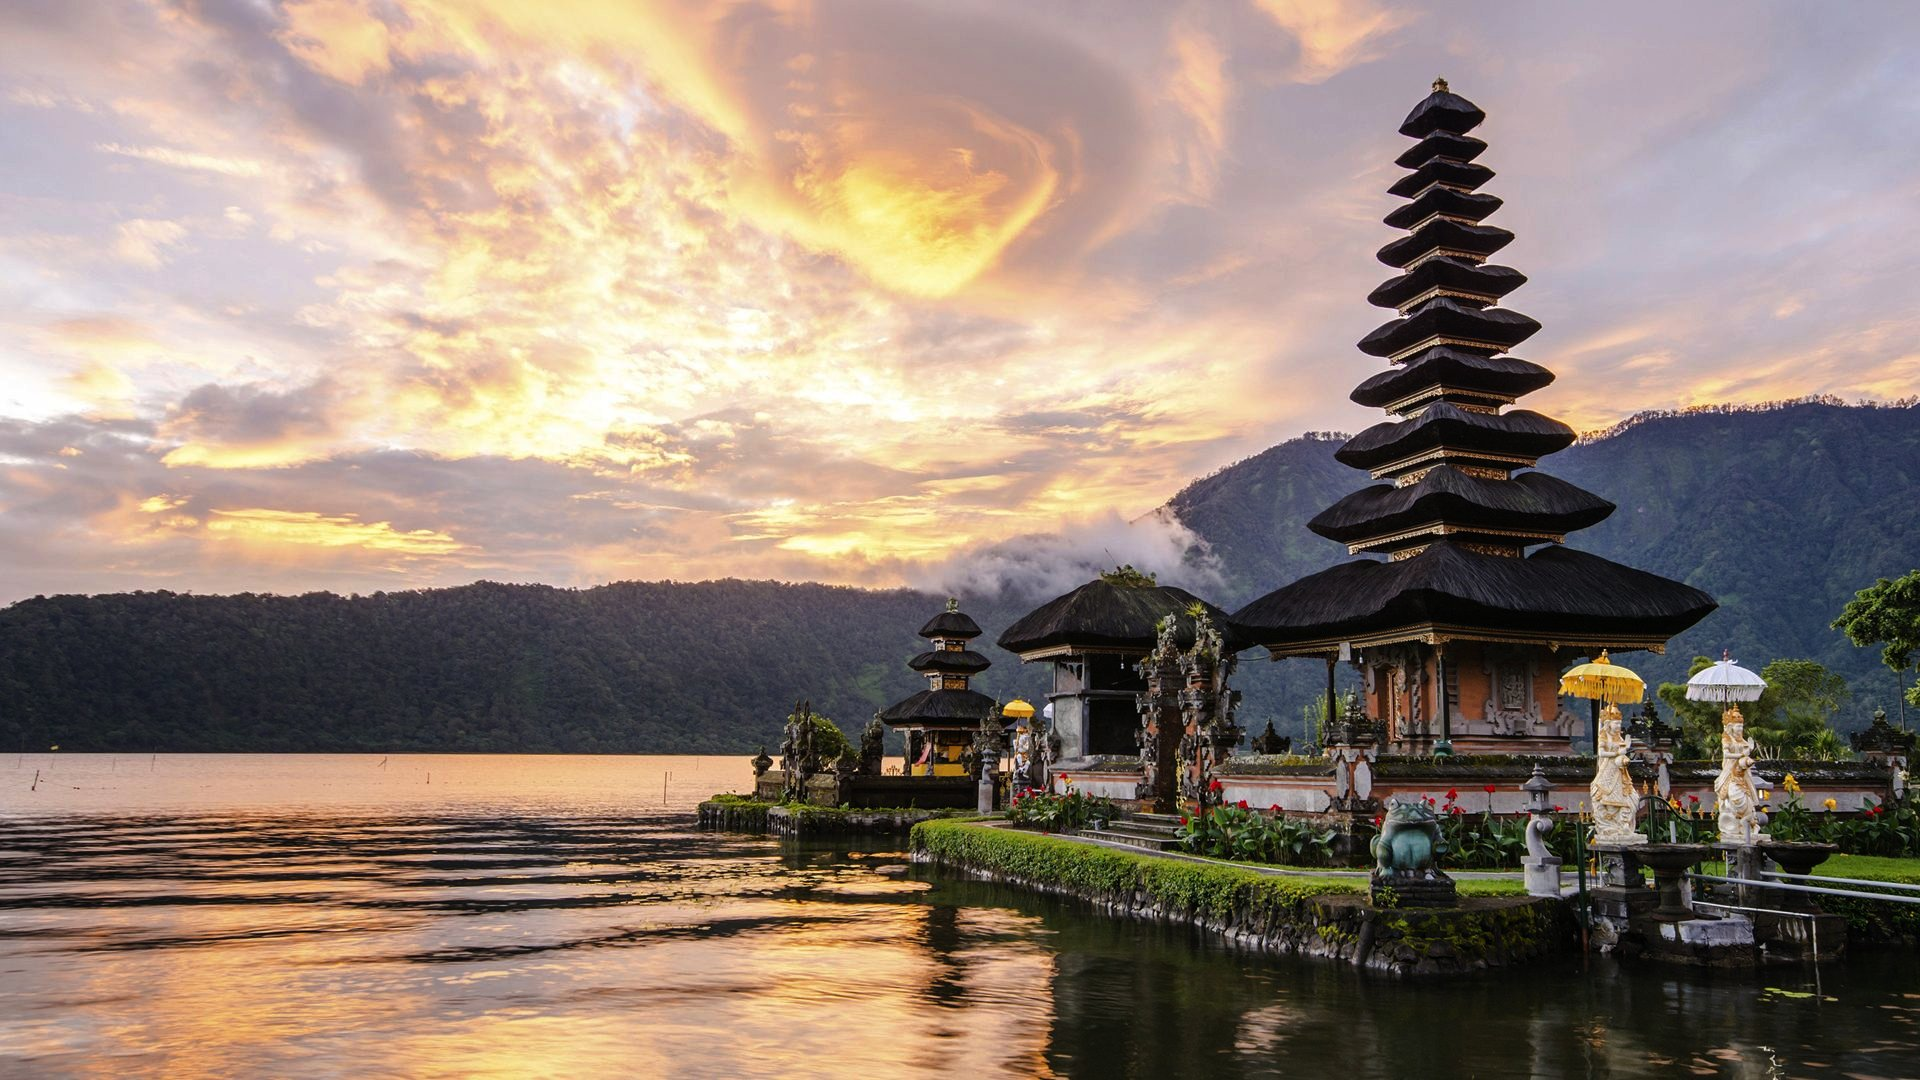 10 Best Spiritual Destinations in Asia - Spiritual Retreat